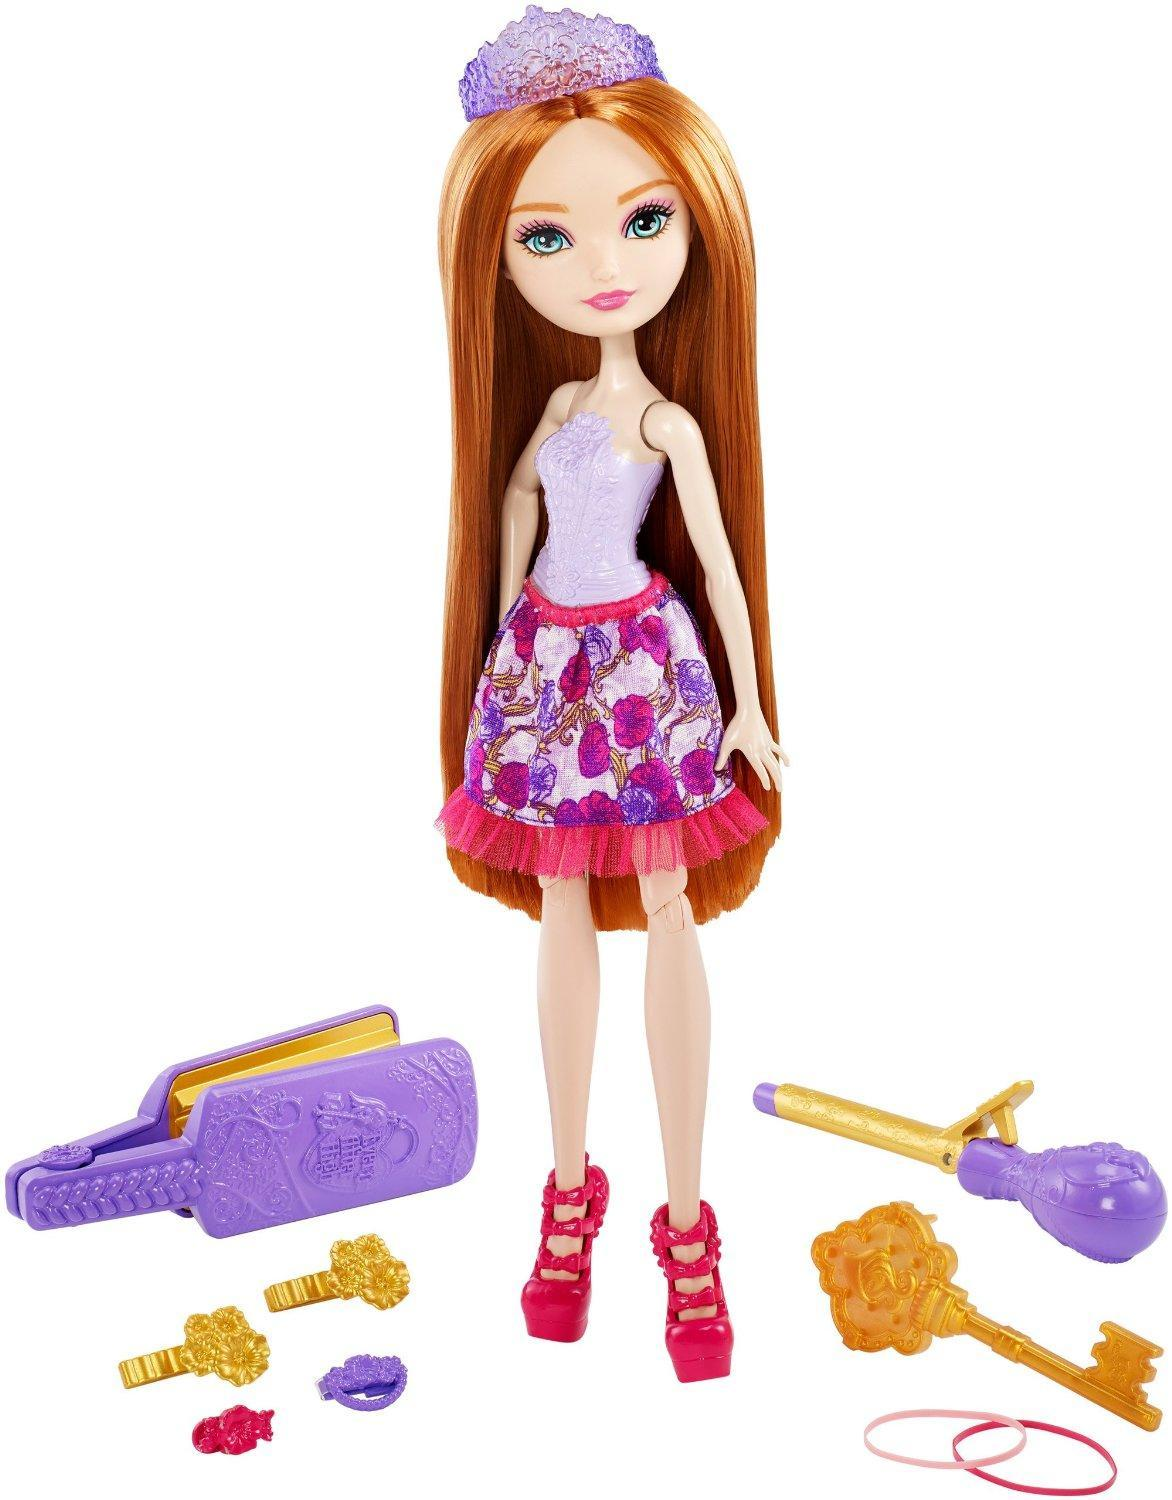 Ever After High Toy Playset - Hairstyling Holly Deluxe